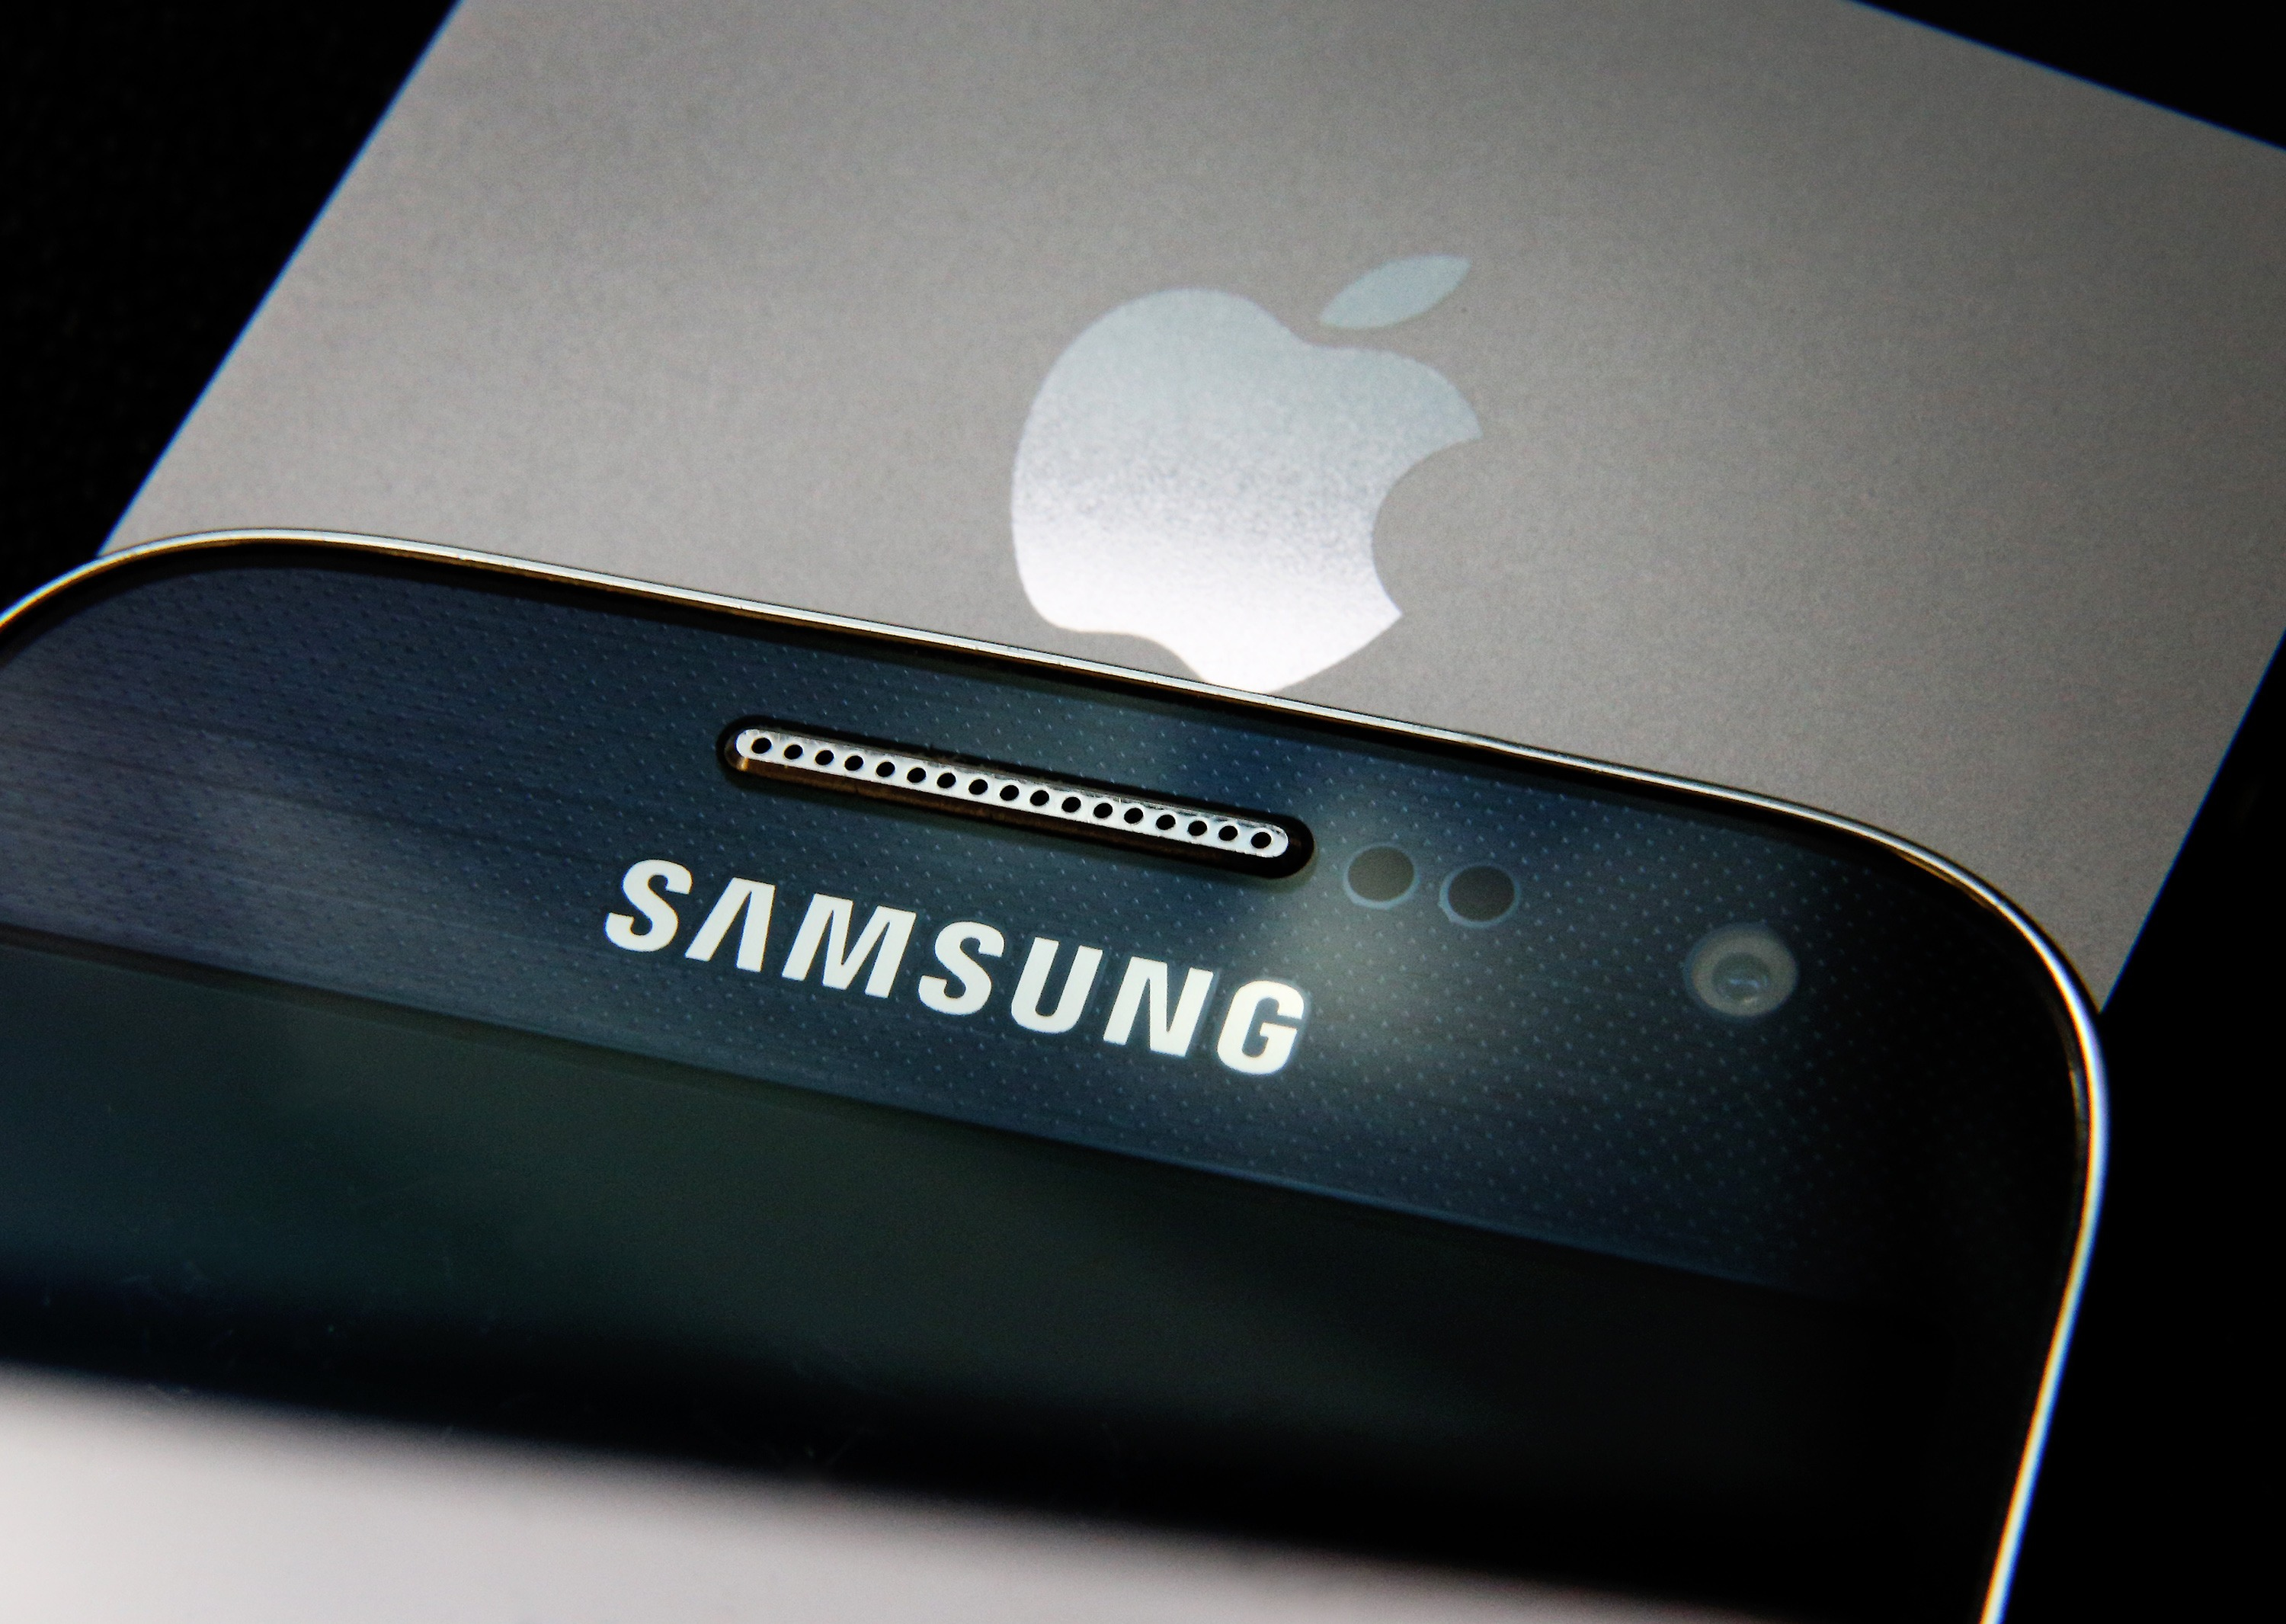 A Samsung and Apple smartphone are displayed on August 6, 2014 in London, England.